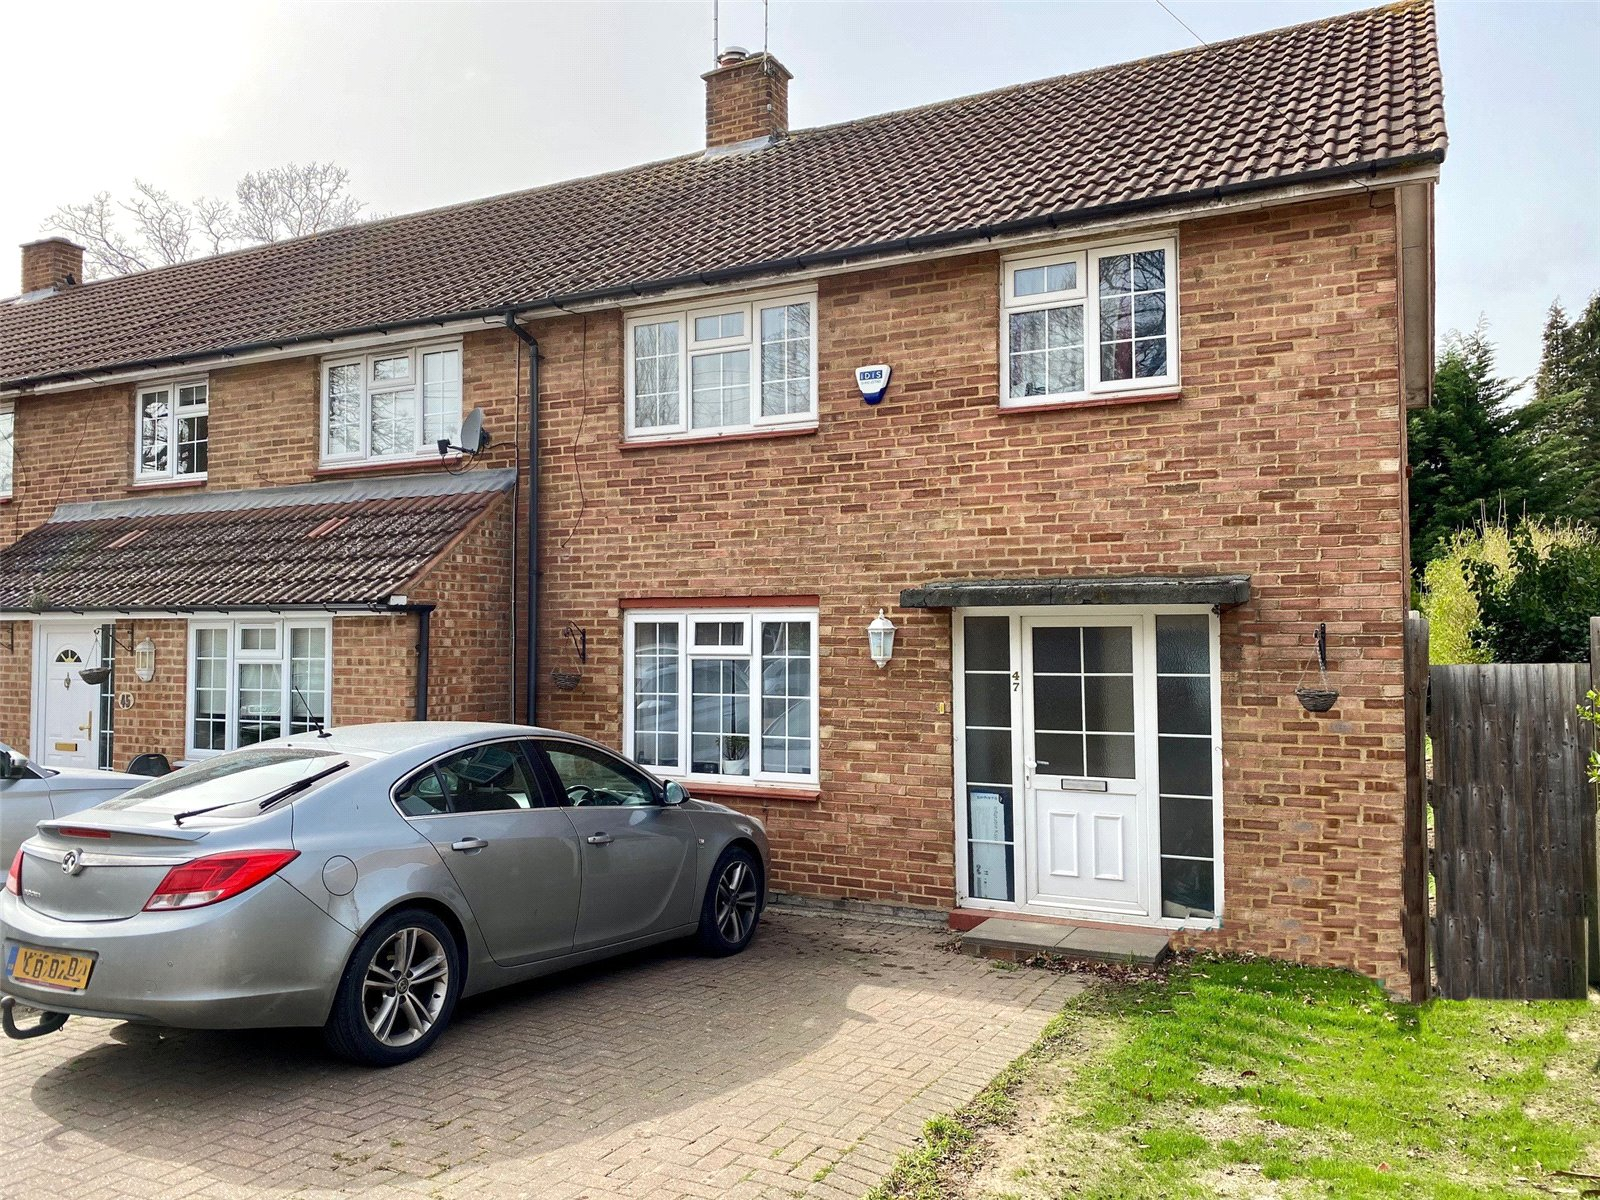 3 bed house to rent in Bricket Wood, AL2 3NB, AL2